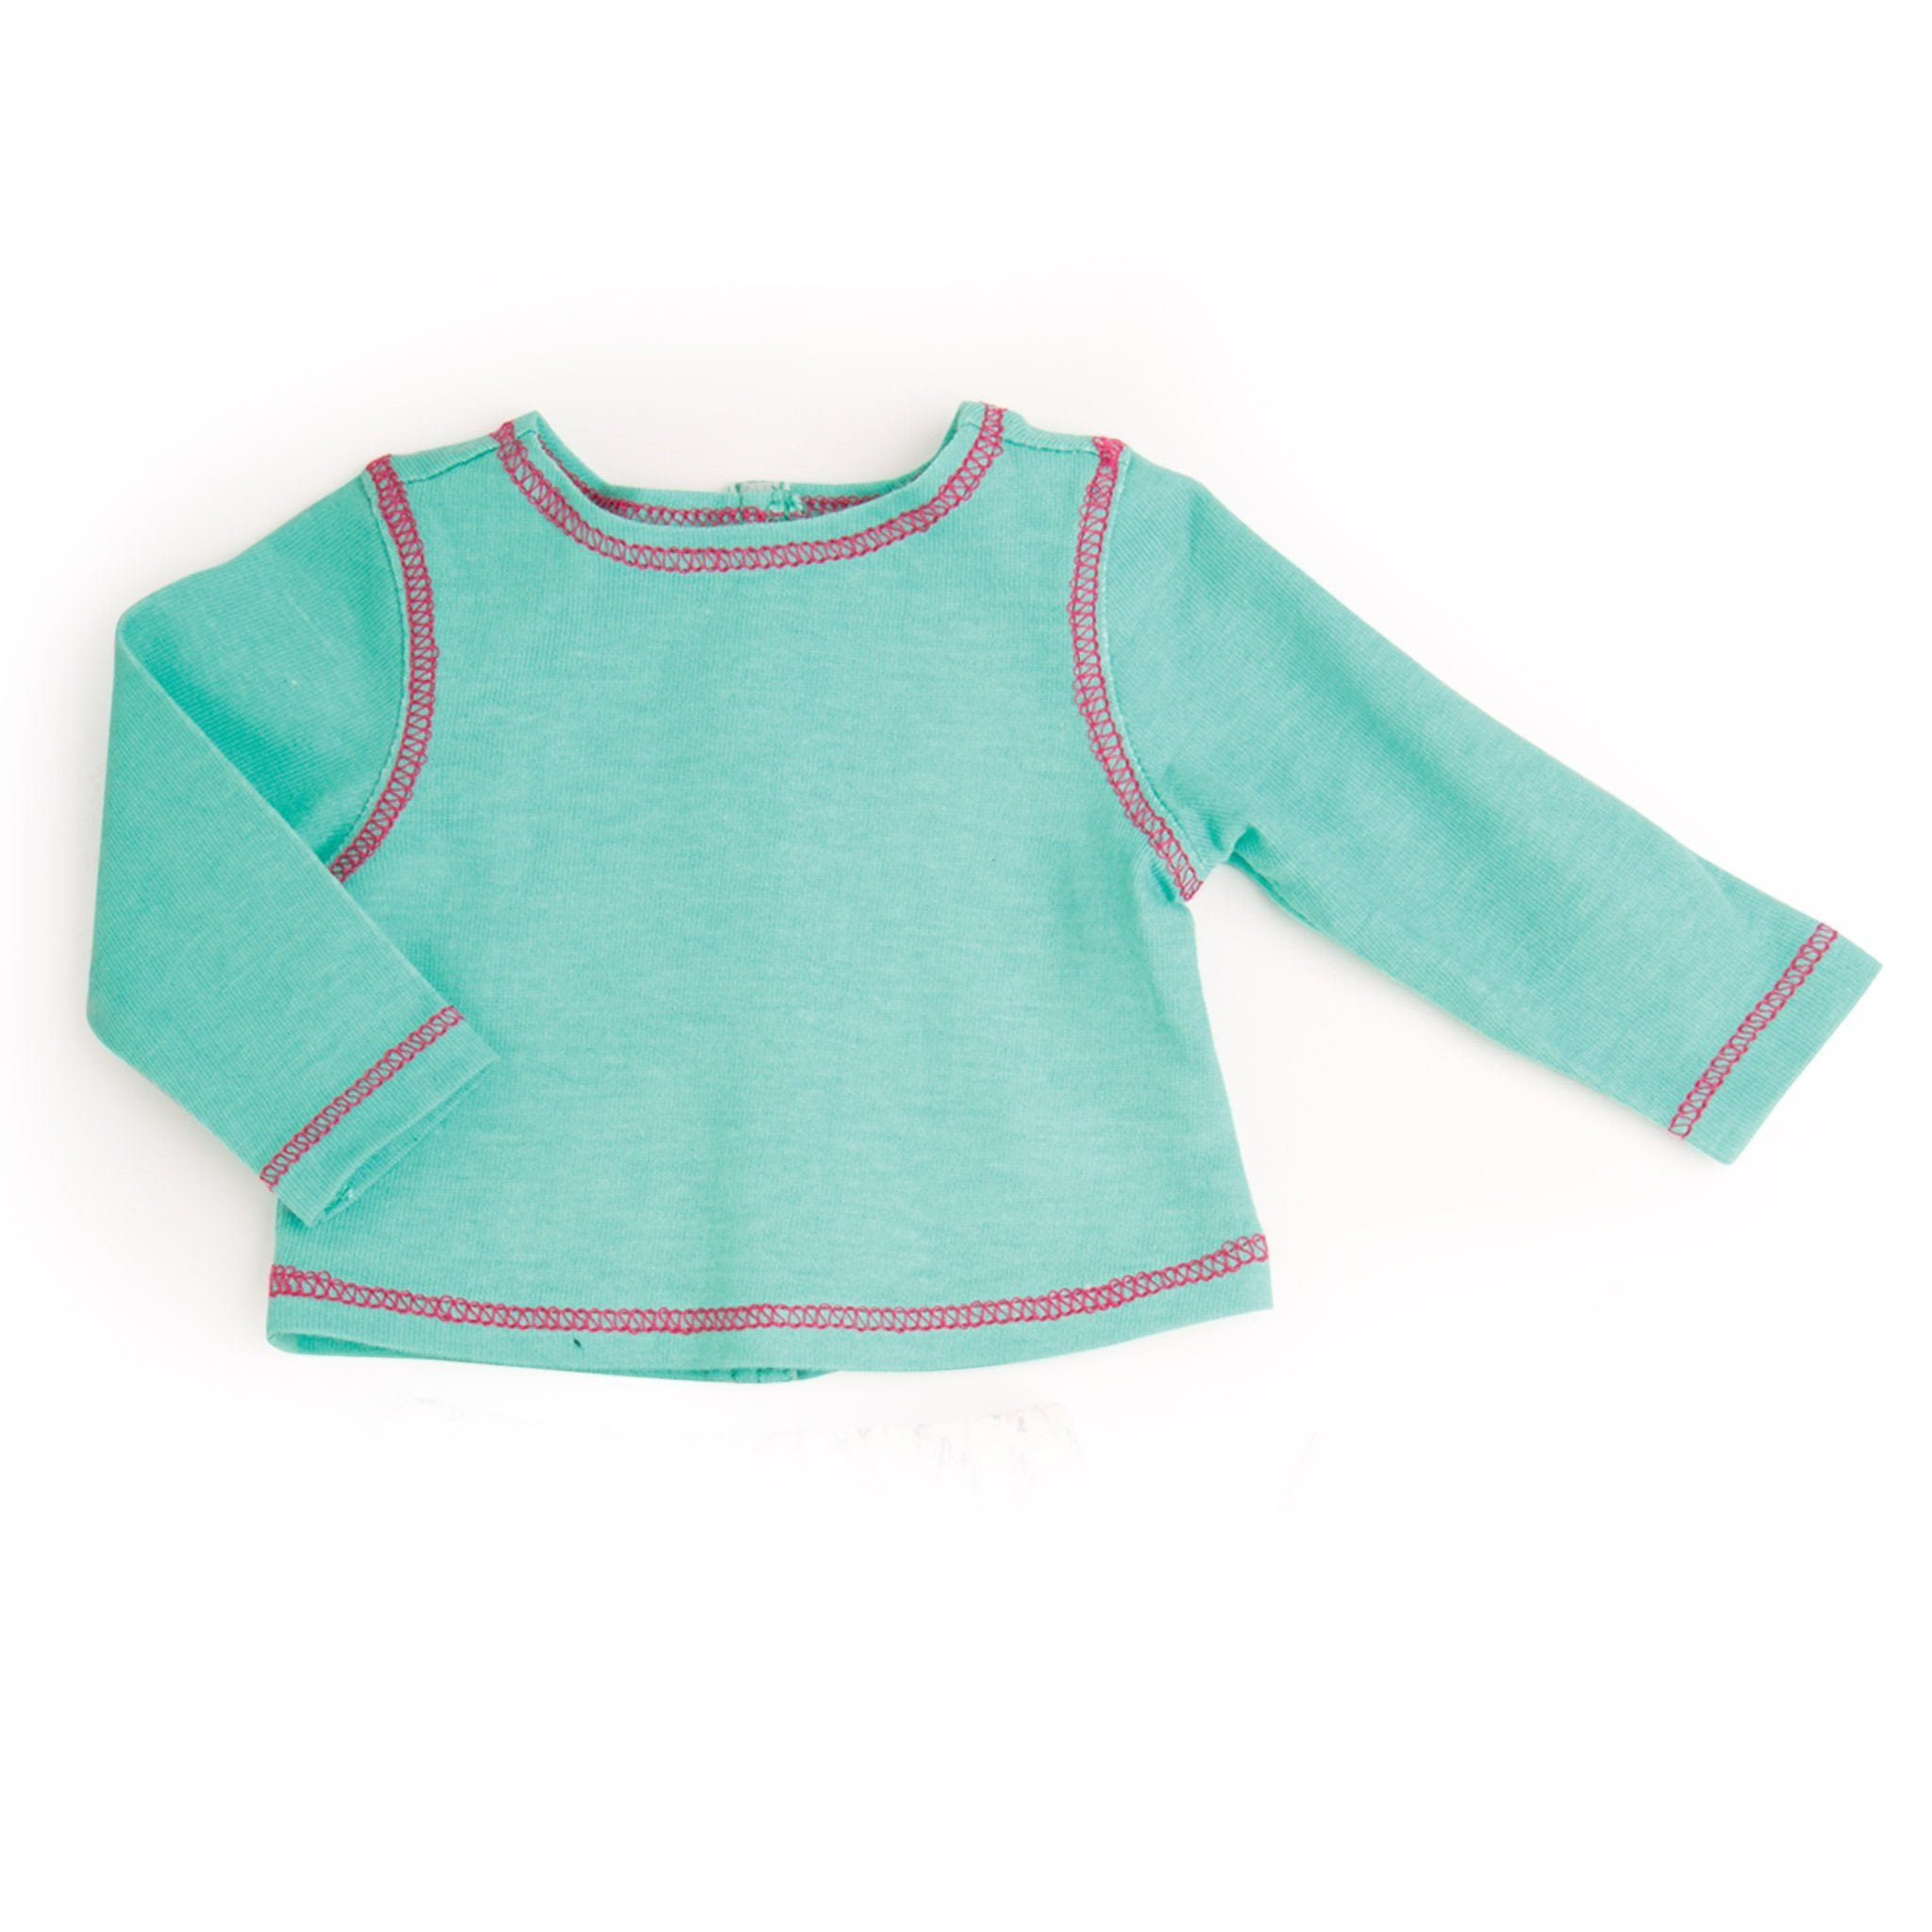 Casual mint green long-sleeve tee with pink stitching fits all 18 inch dolls.